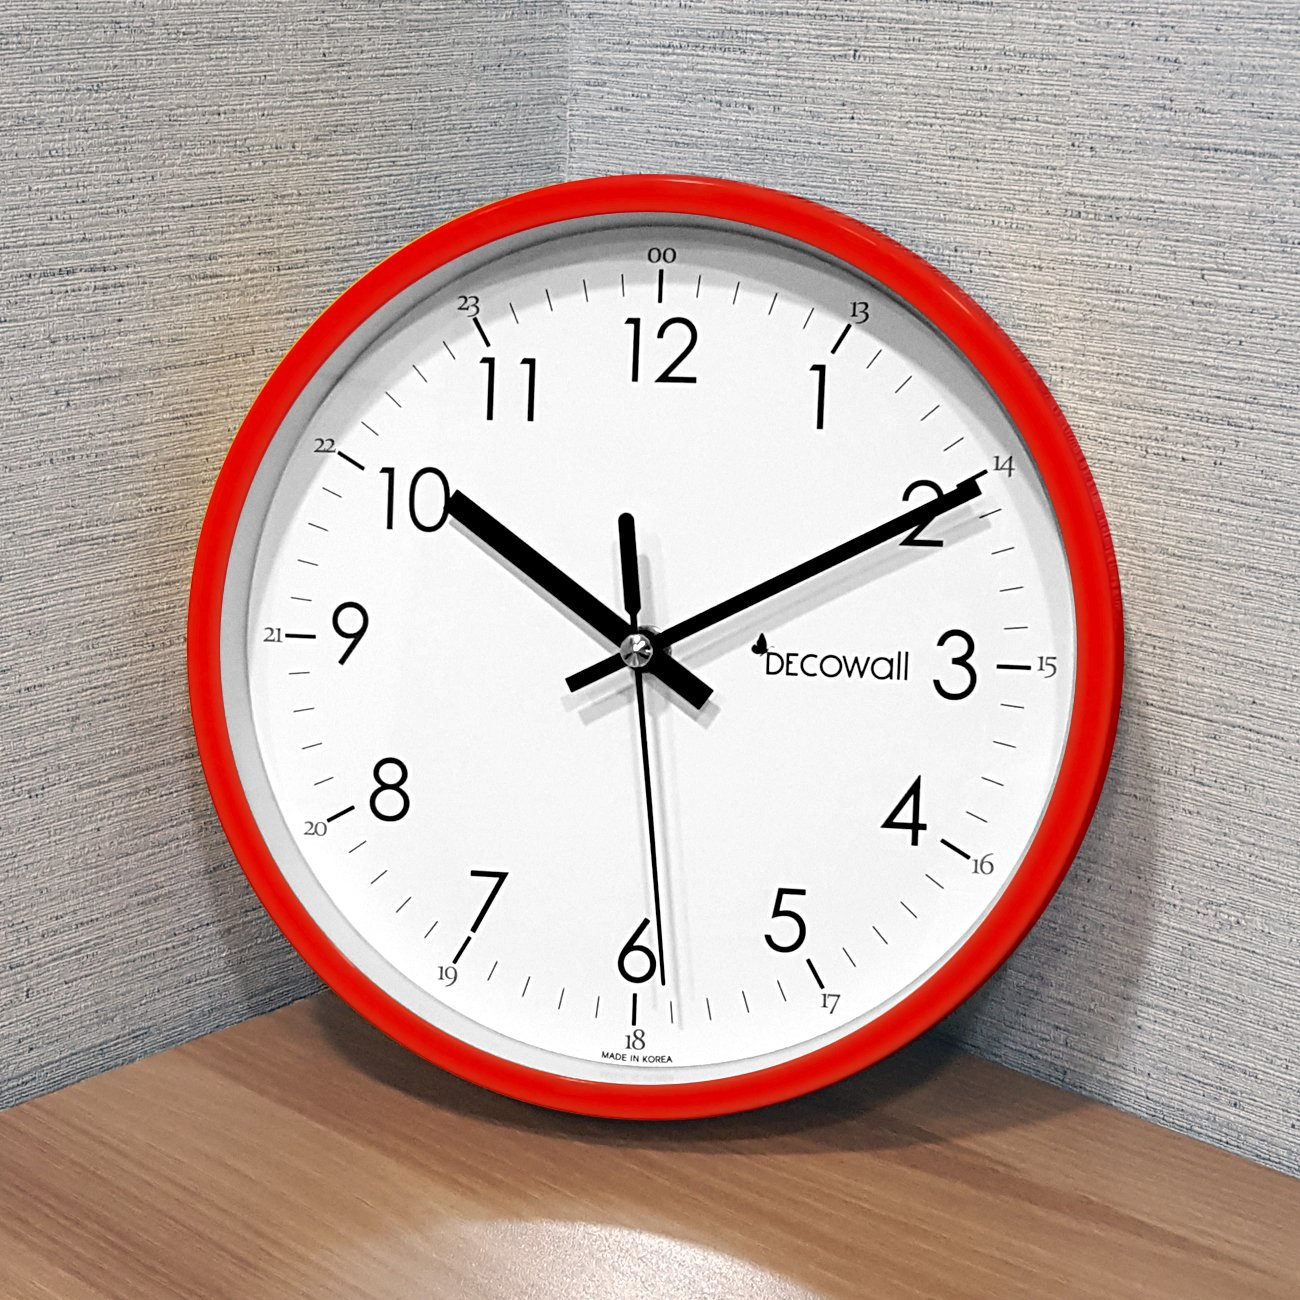 DECOWALL DSH-M22R 8.8 Non-Ticking Silent Modern Pastel Wall Clock DIY for Living Room Bedrooms Office Kitchens Red, 22.5cm